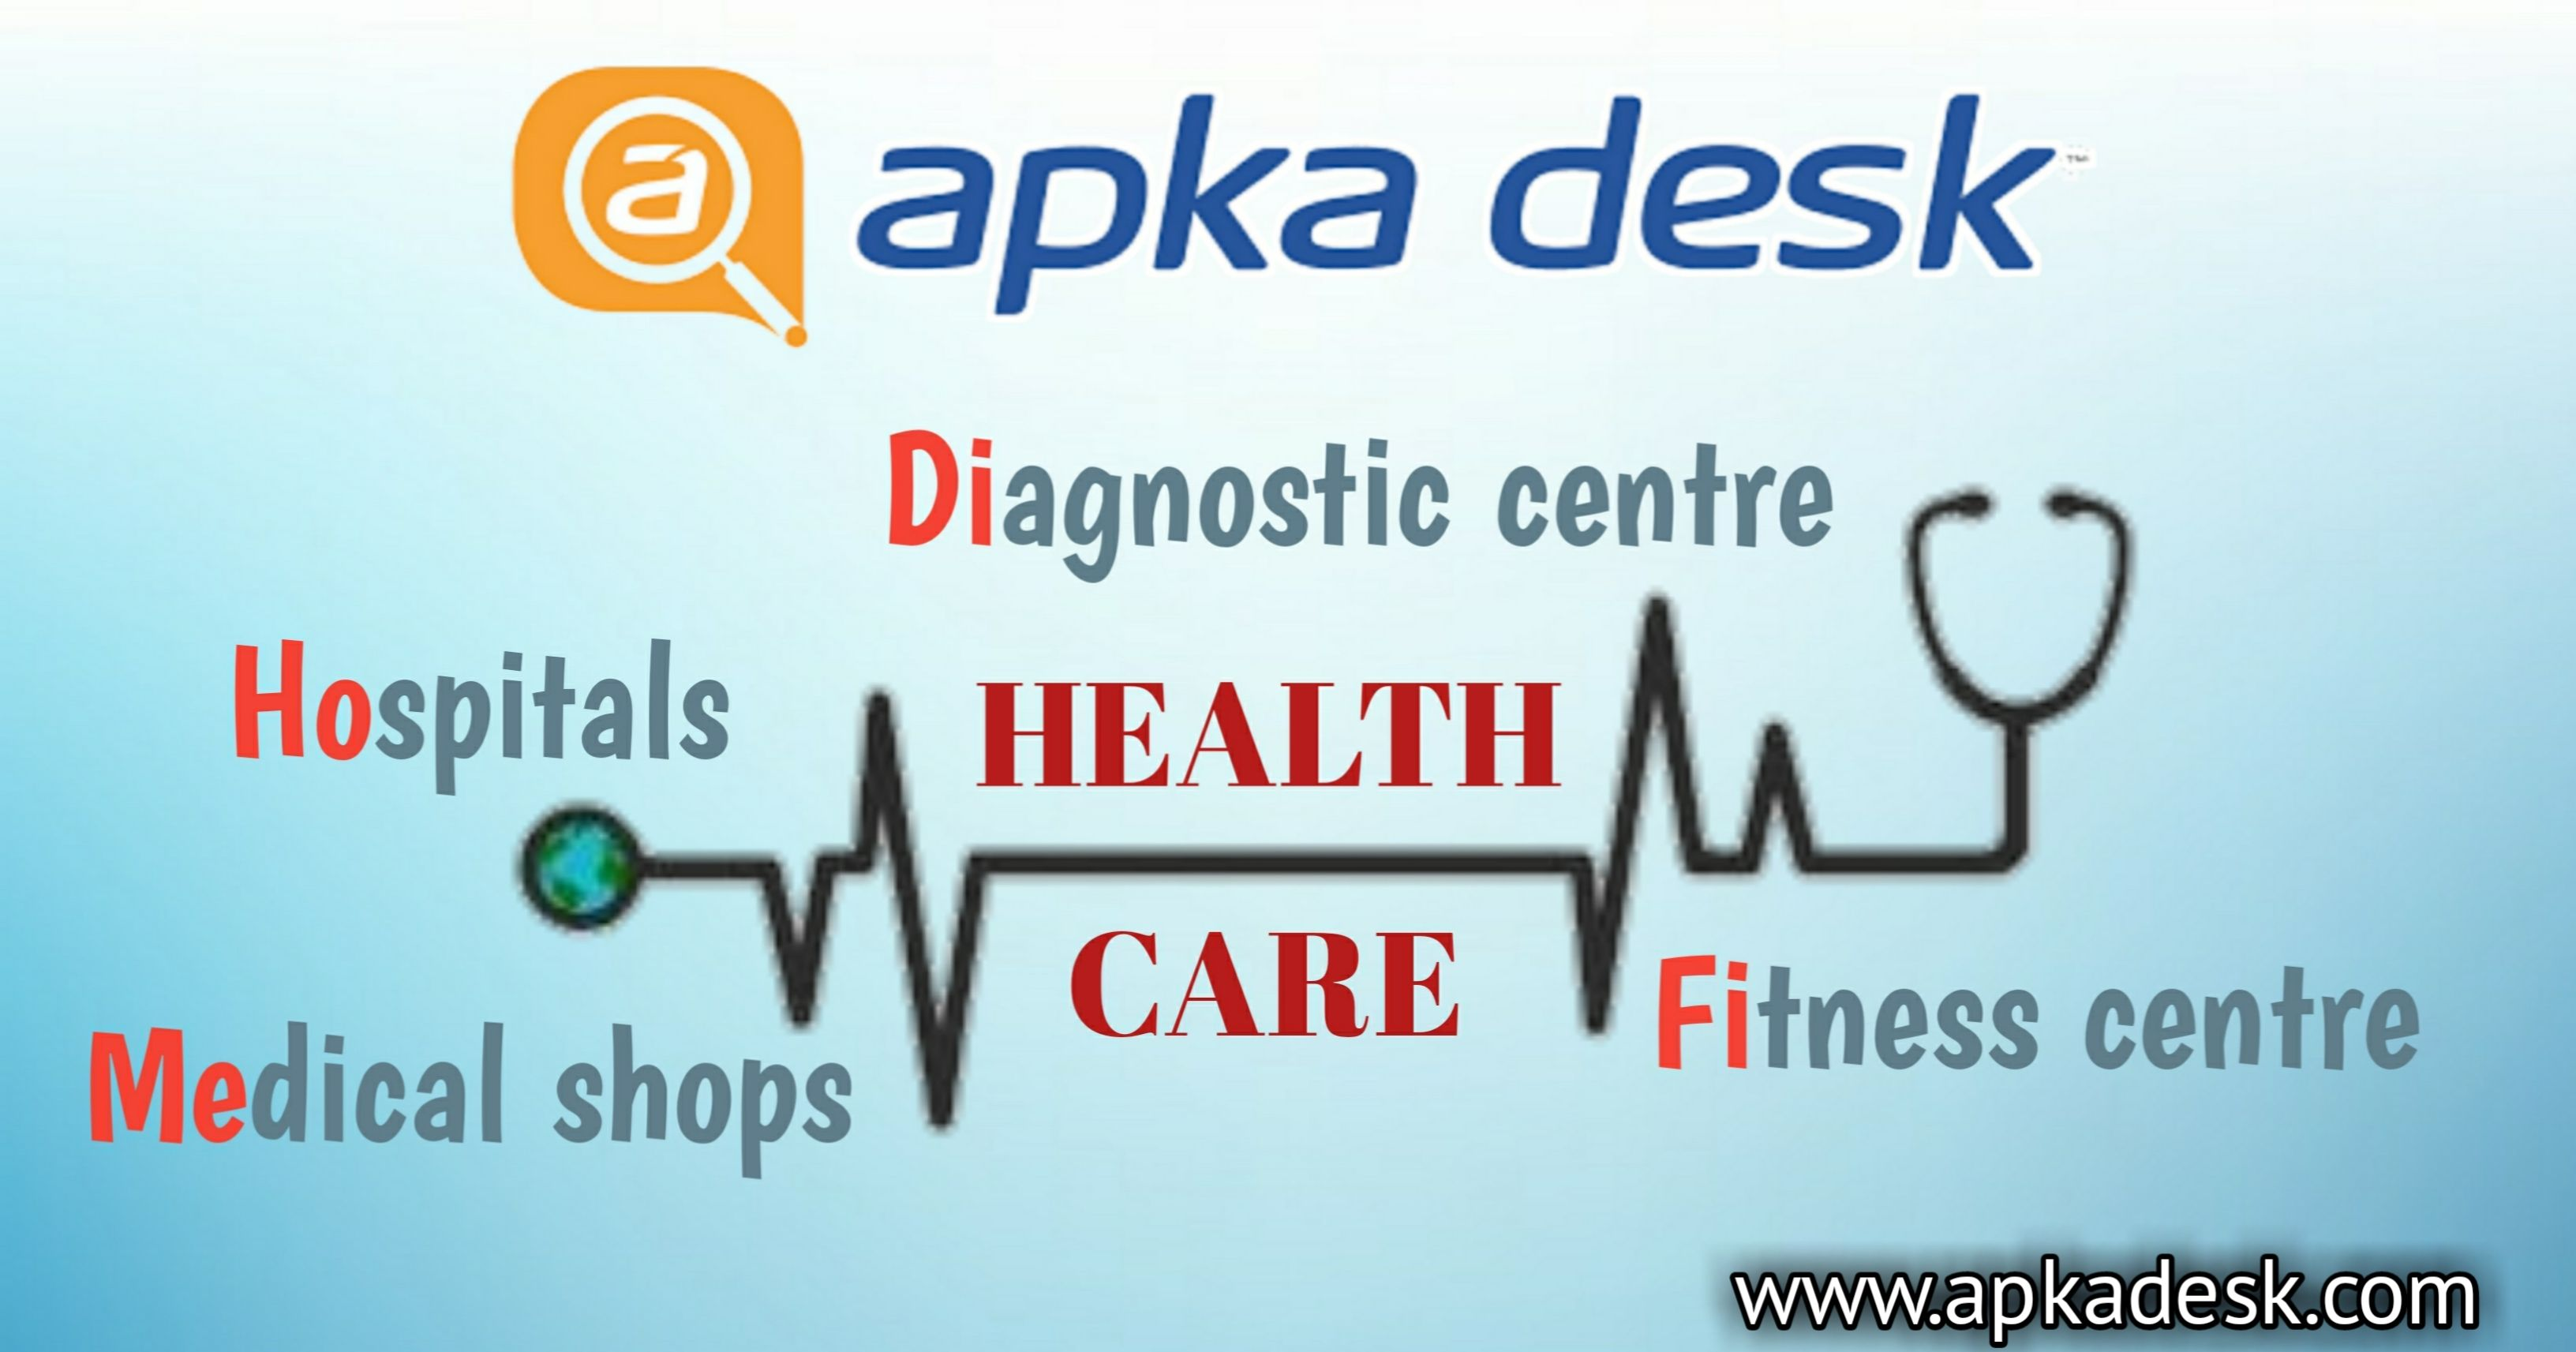 Apkadesk is the no 1 health portal which gives us the